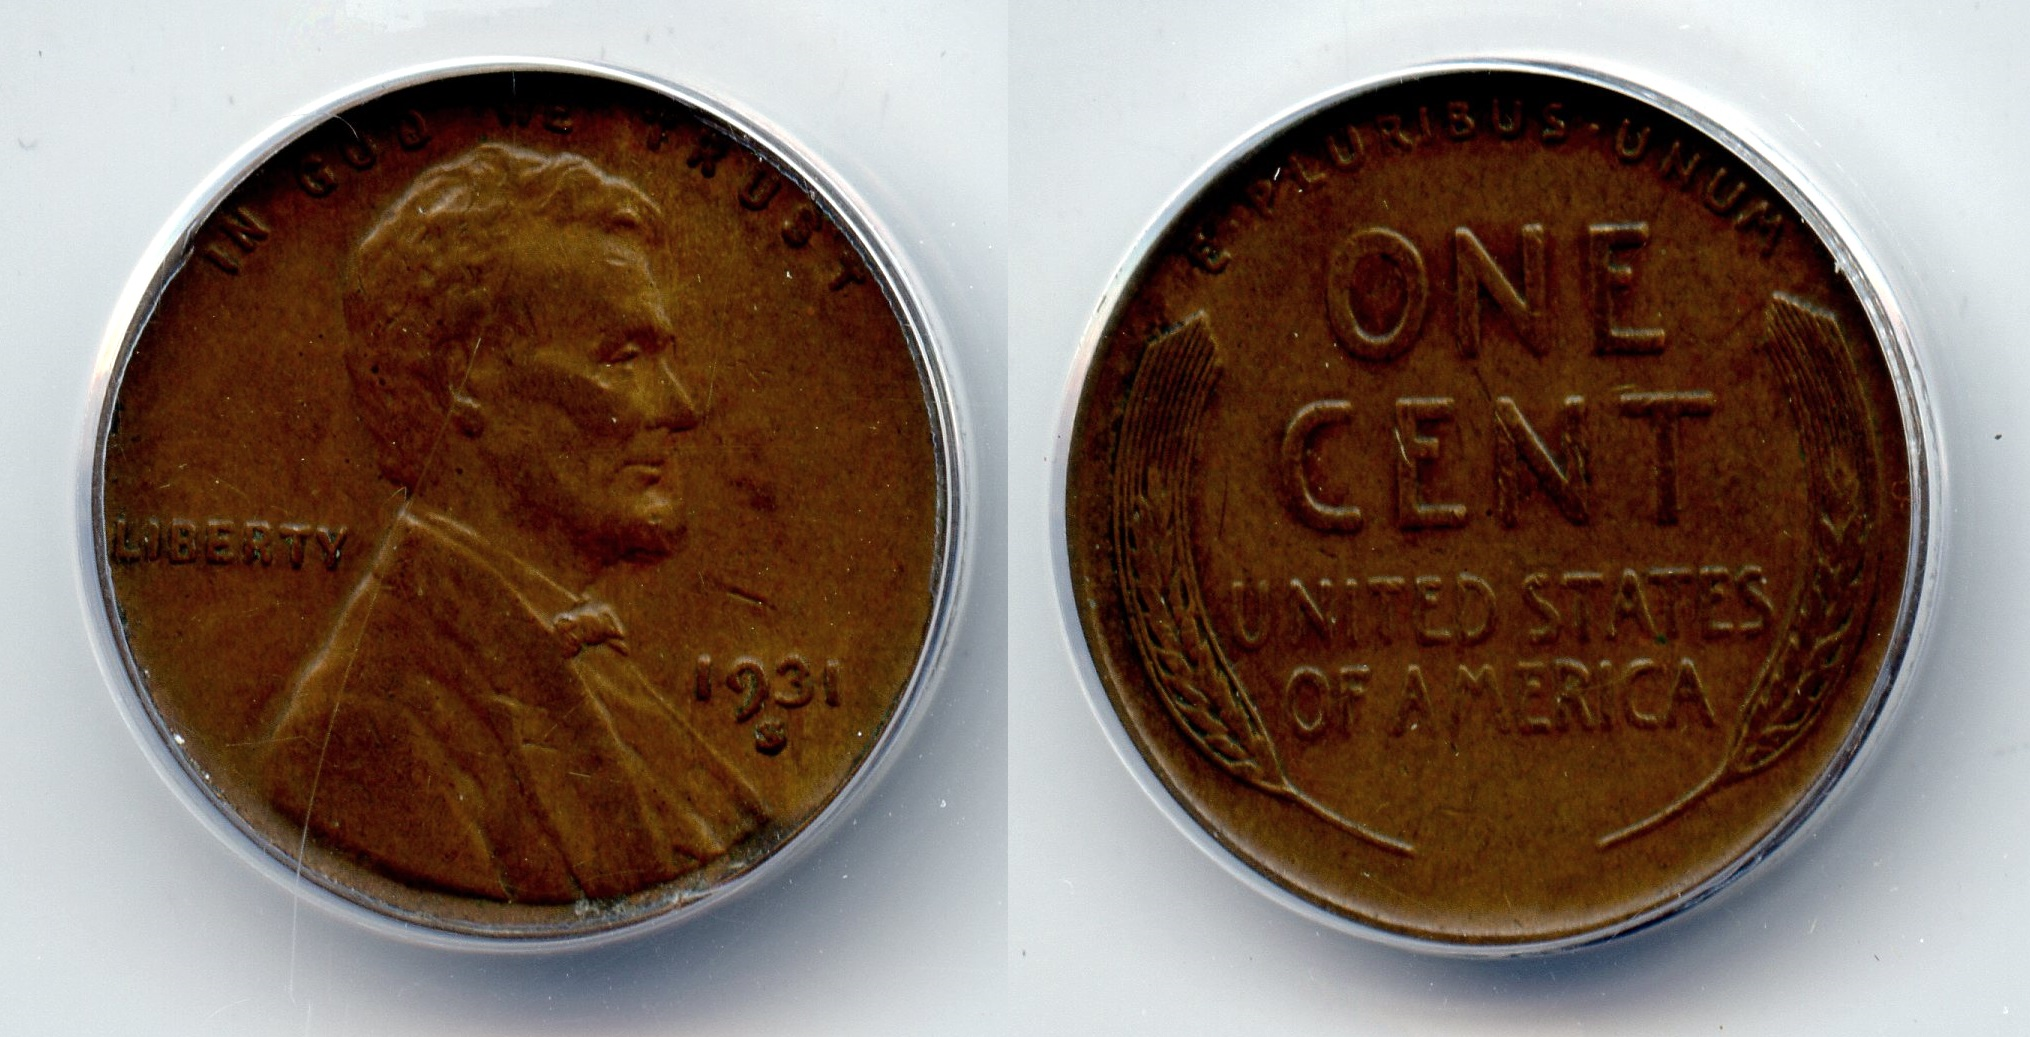 1931-S Lincoln Cent ANACS EF-40 #a